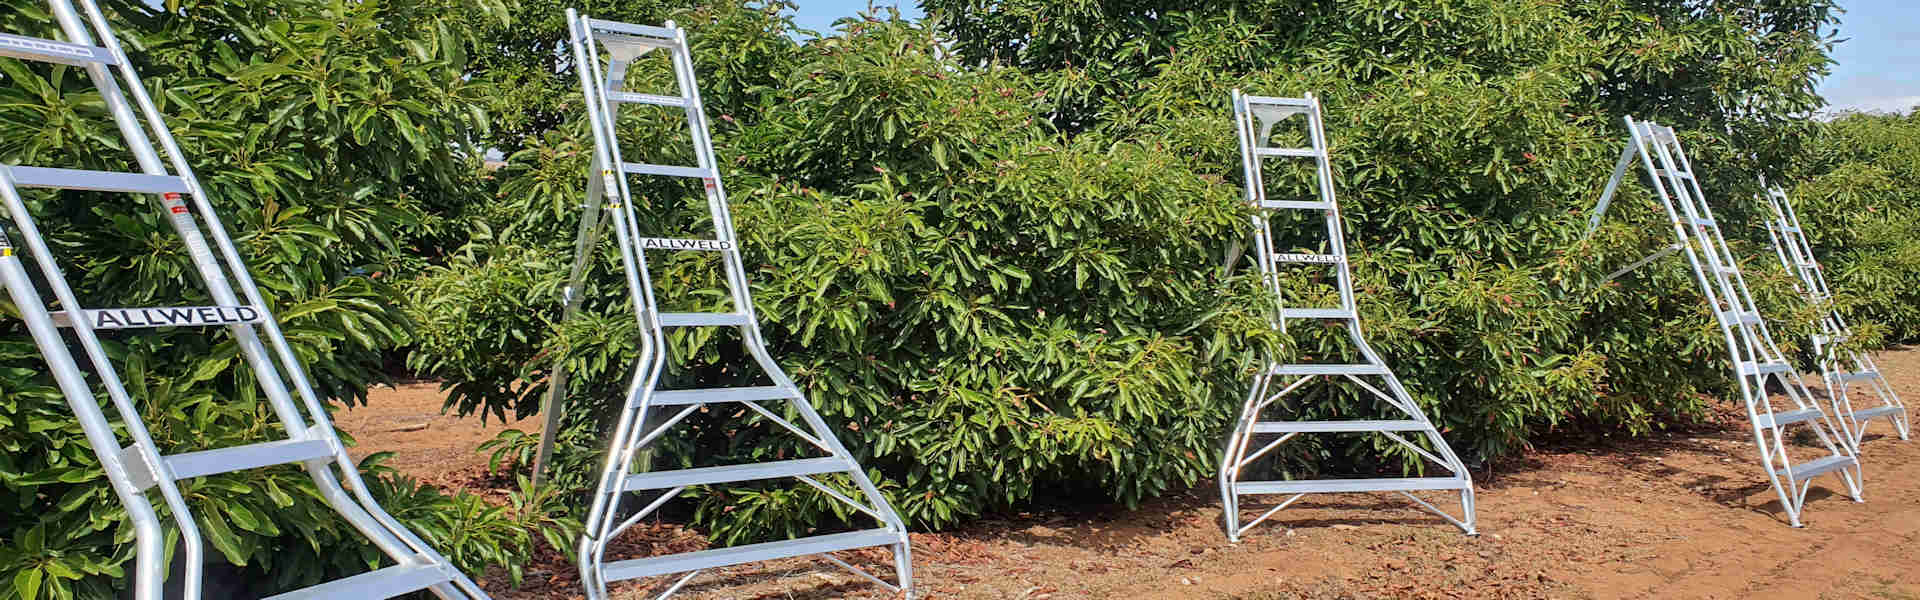 Allweld Orchard Ladders